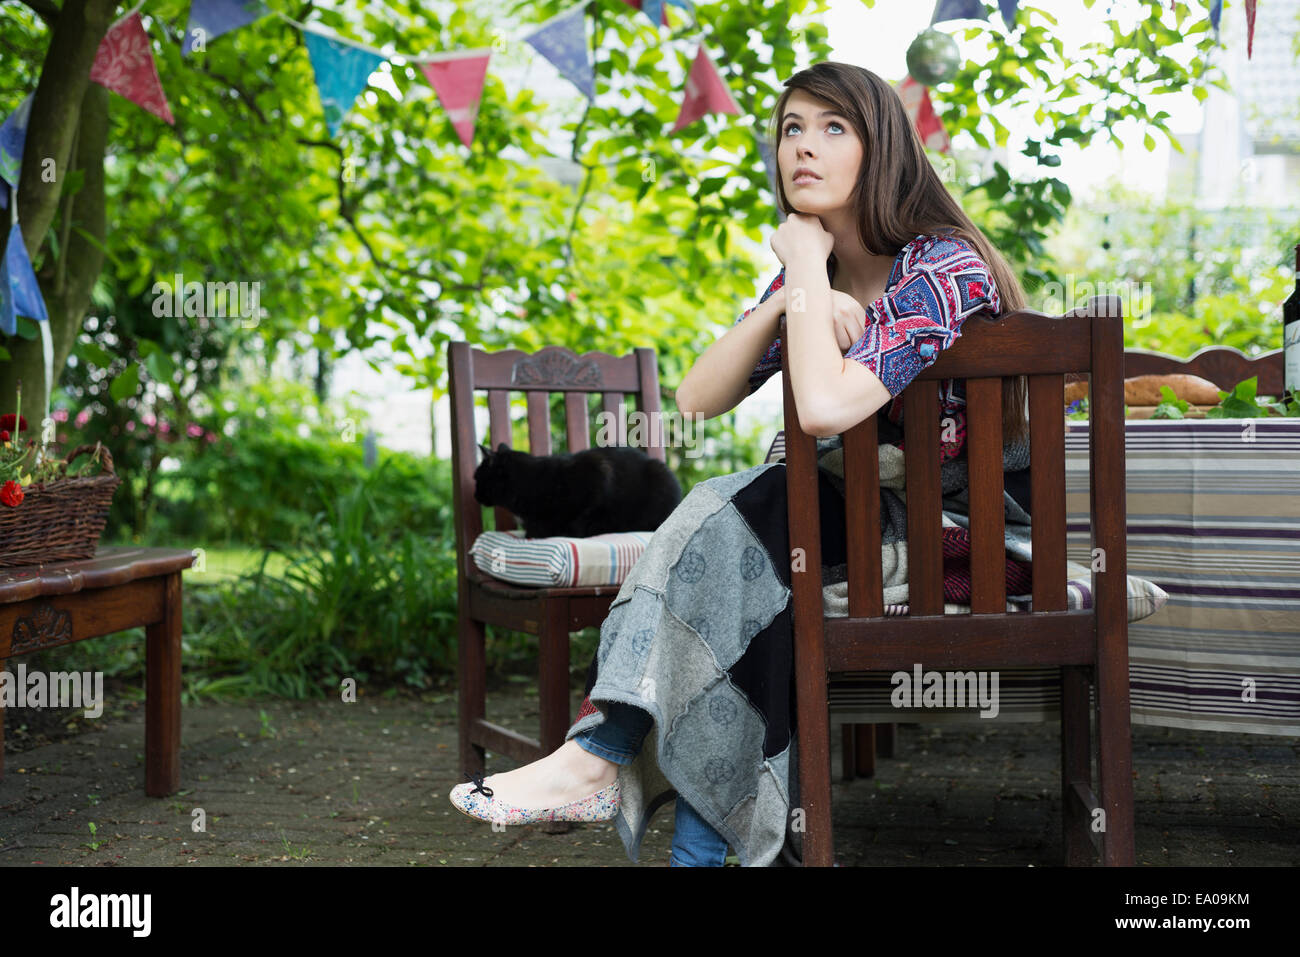 Pensive young woman sitting in garden - Stock Image